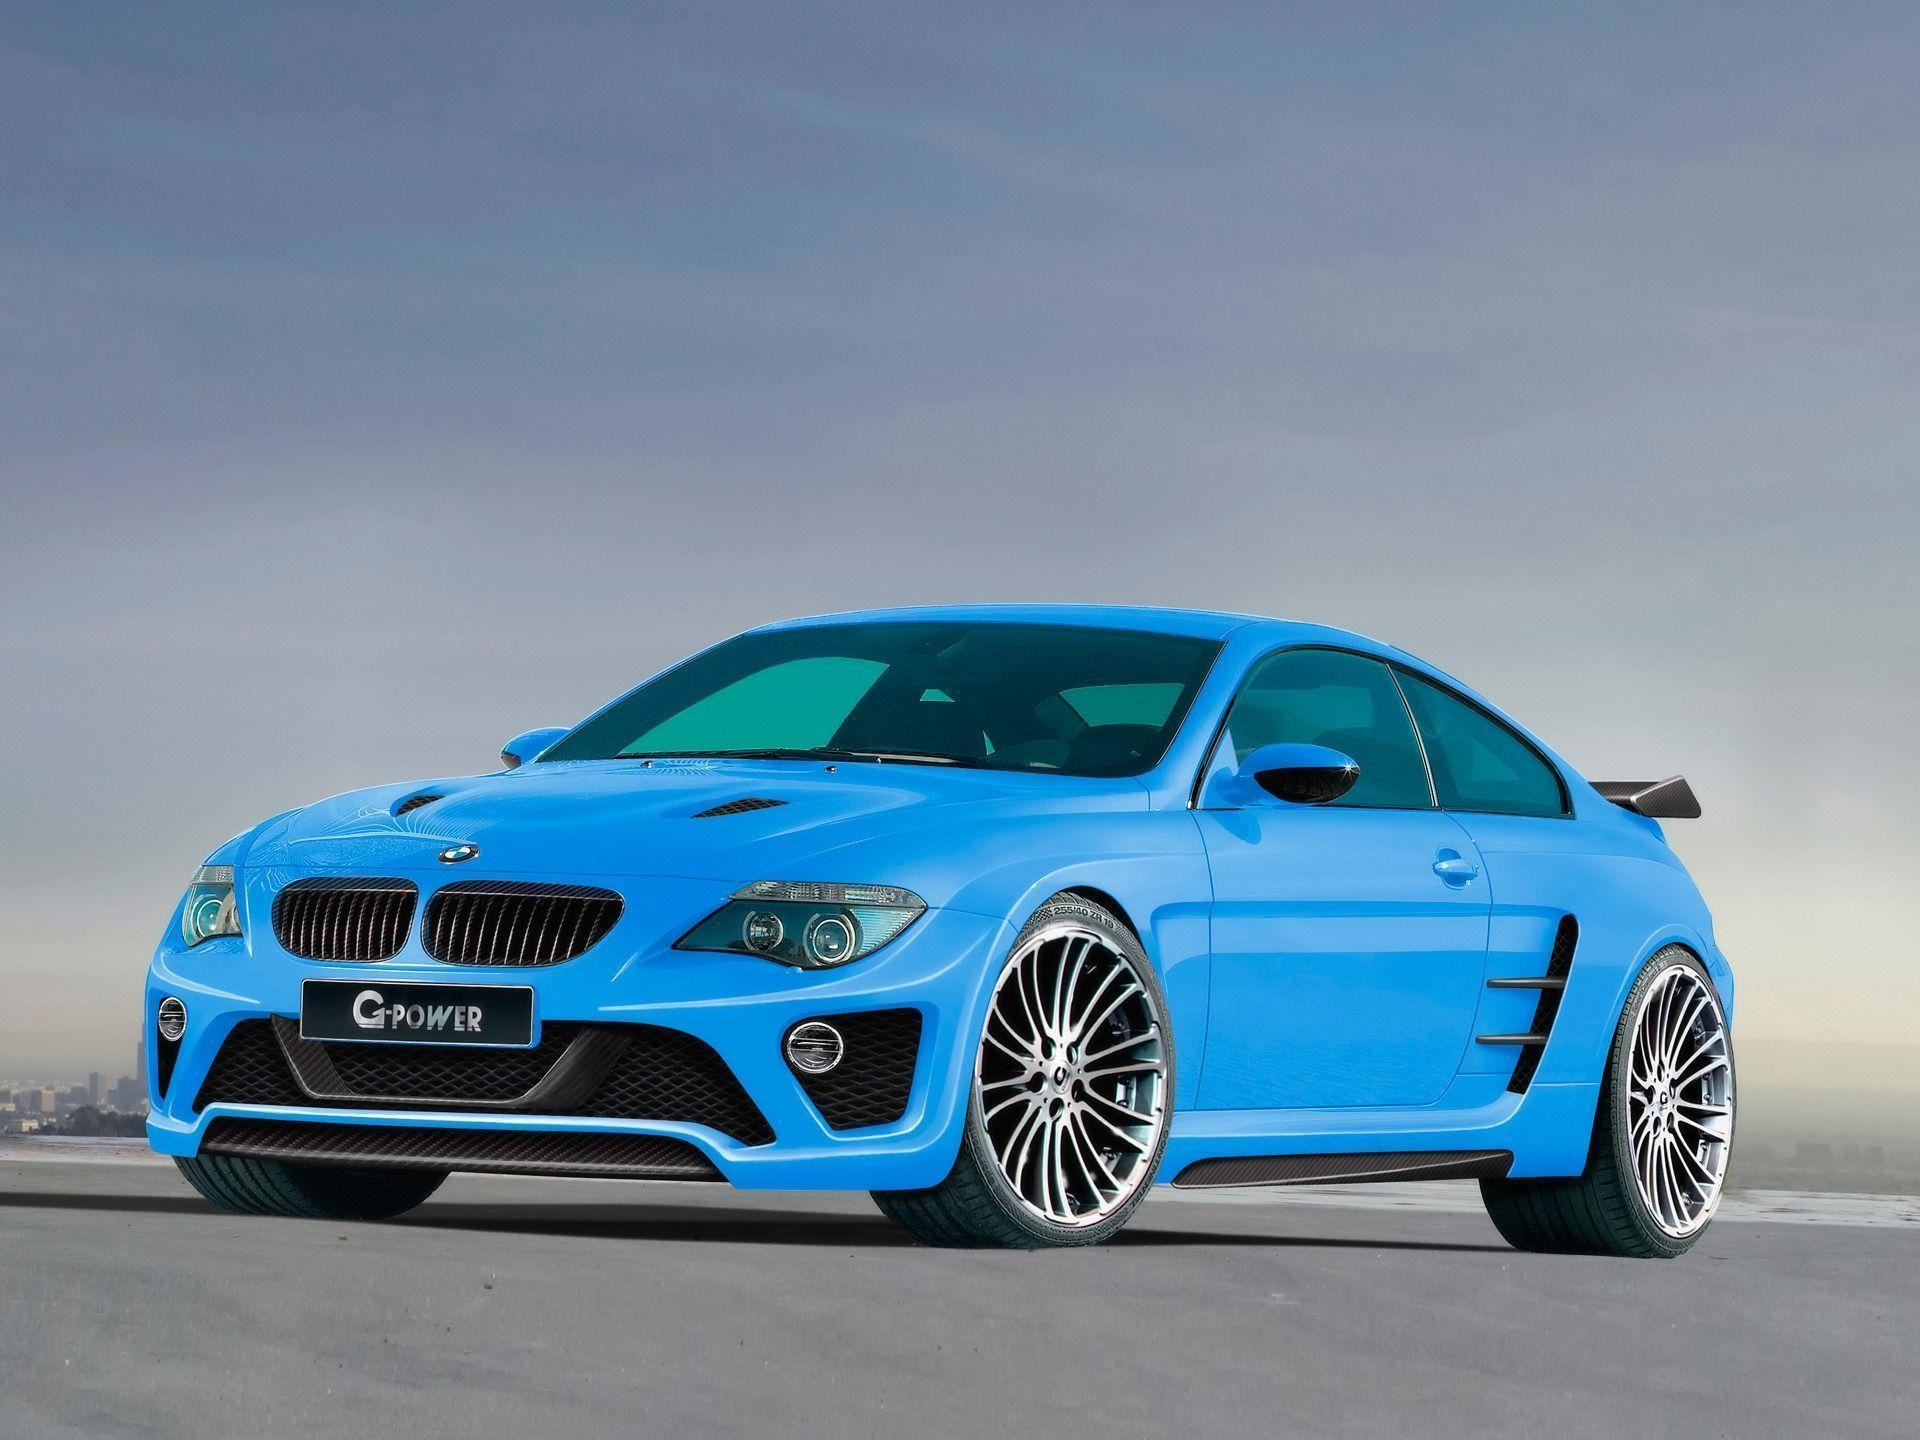 Res: 1920x1440, Bmw car wallpaper wallpapers for free download about (3,302 .